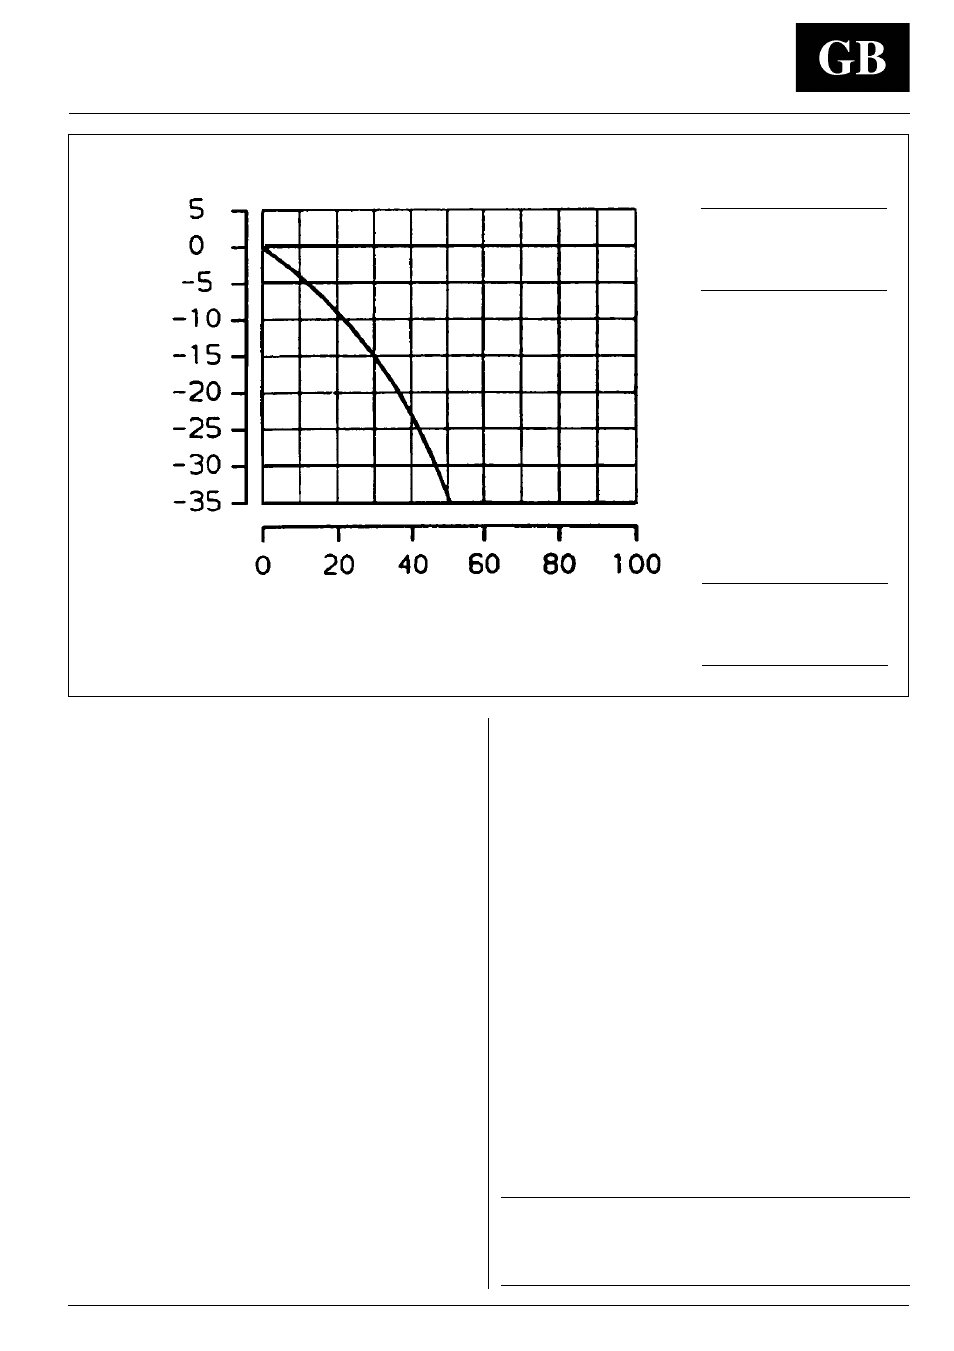 carrier 30ra wiring diagram dynastart 30rh water connections ethylene glycol curve aquasnap user manual page 8 16